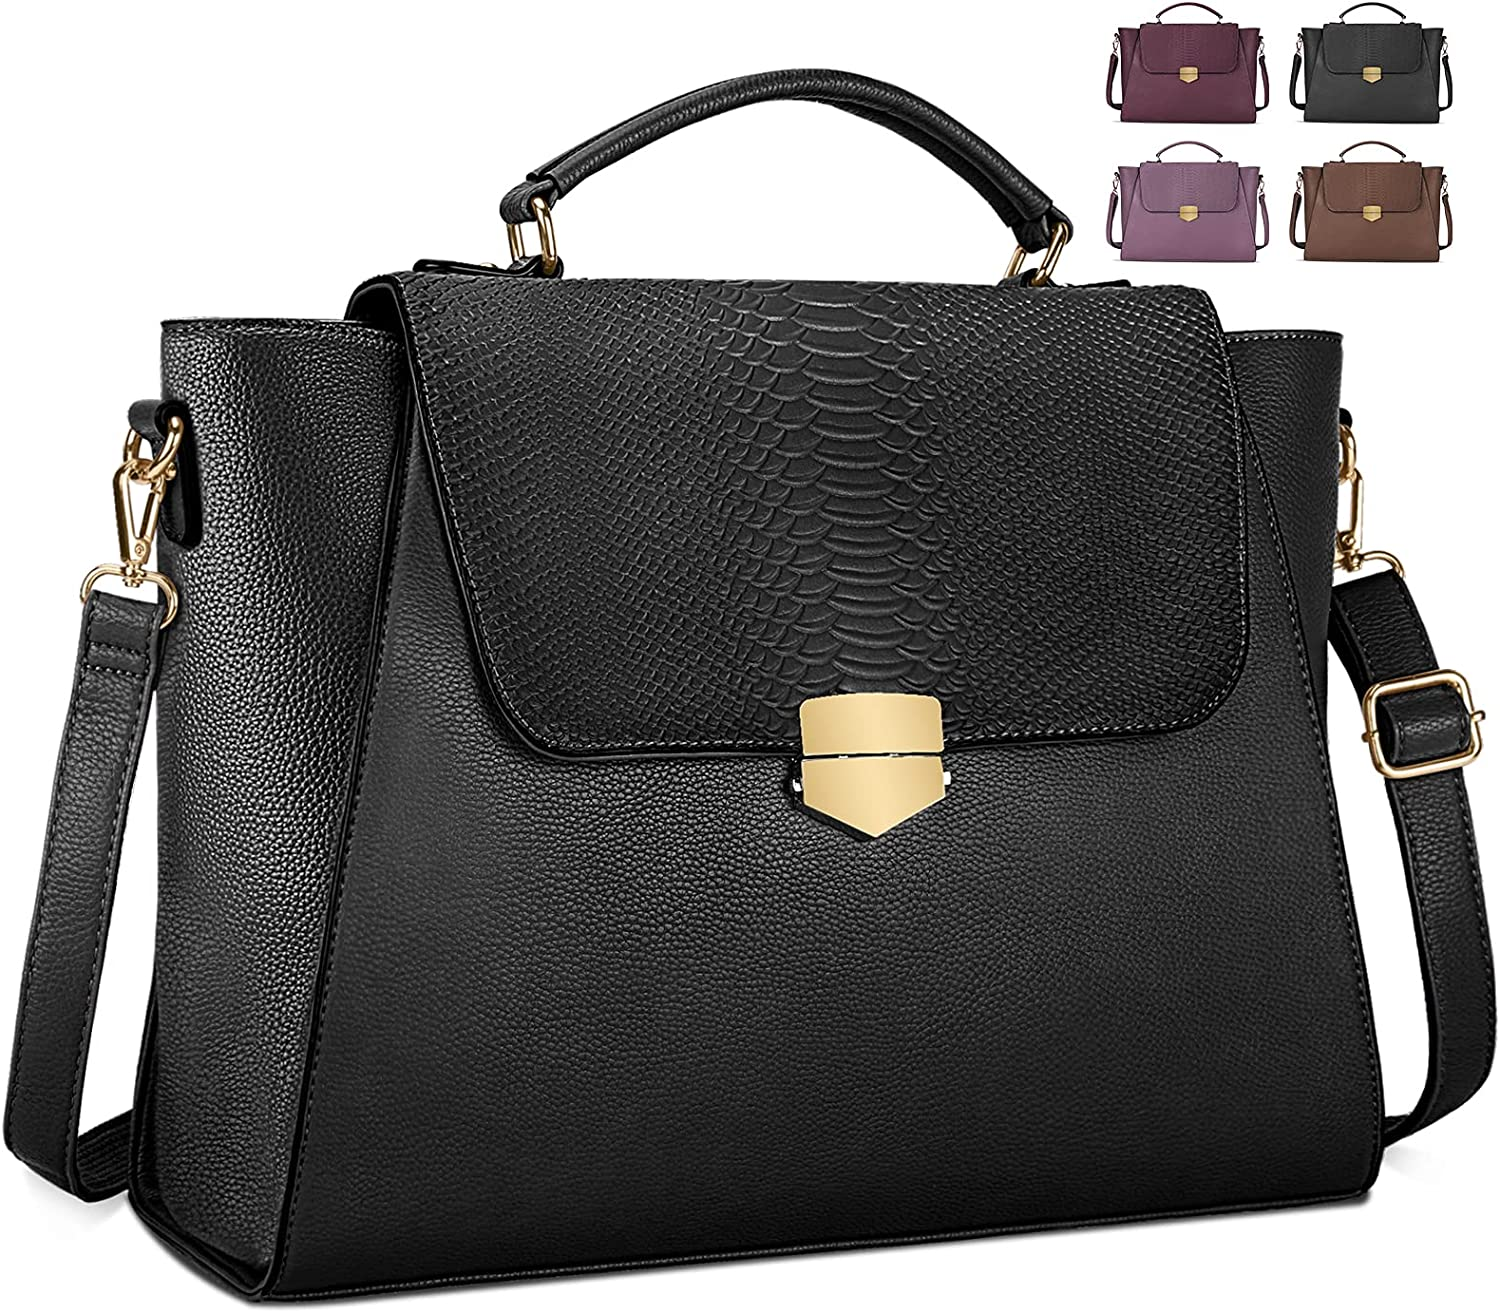 Laptop Bag for Women 15.6 Inch Briefcase Professional Messenger Bag Business Work Tote Bag Crossboby Shoulder Bag with Professional Padded Compartment for Office Travel College Black